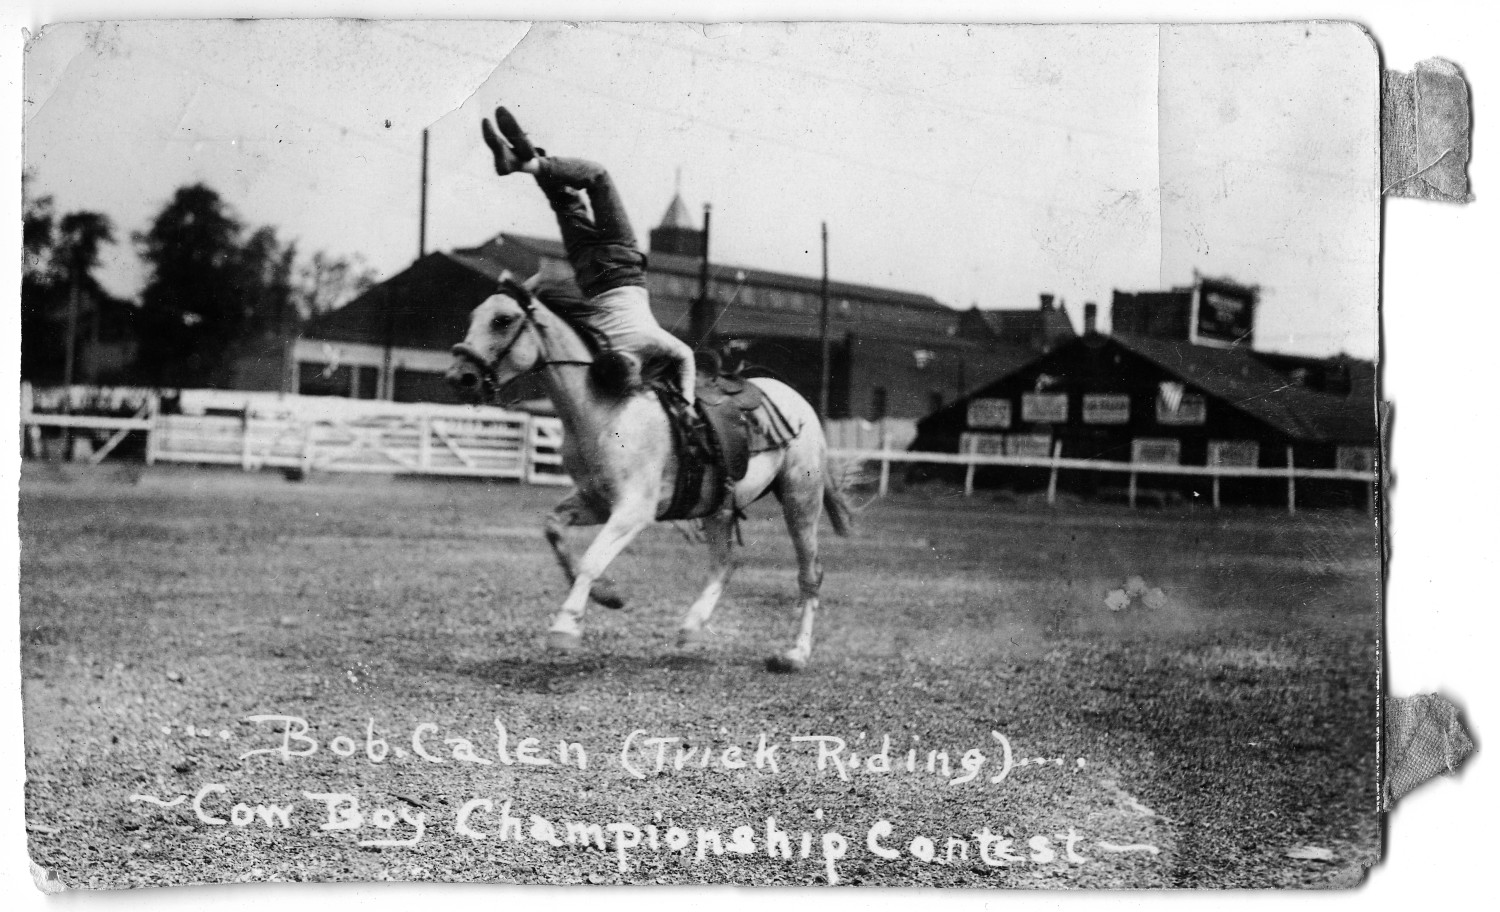 Bob Calen trick riding - Cowboy Championship Contest, c. 1920                                                                                                      [Sequence #]: 1 of 1